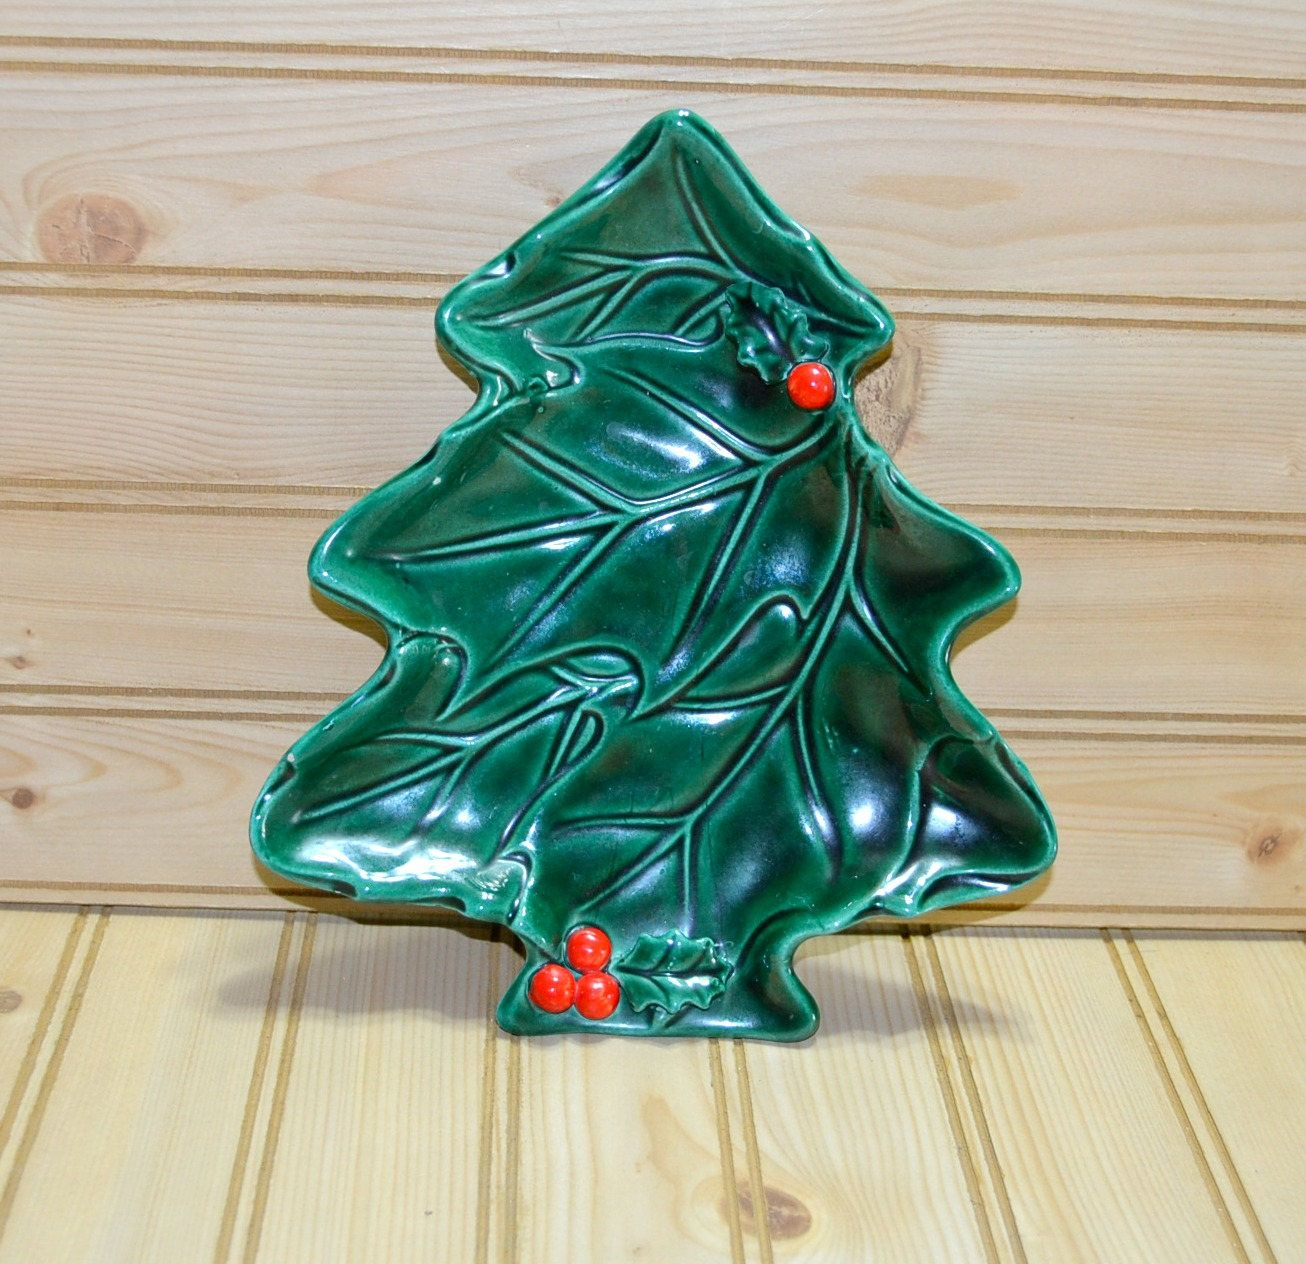 Vintage Lefton Tree Shaped Green Holly Dish Christmas Pine Candy